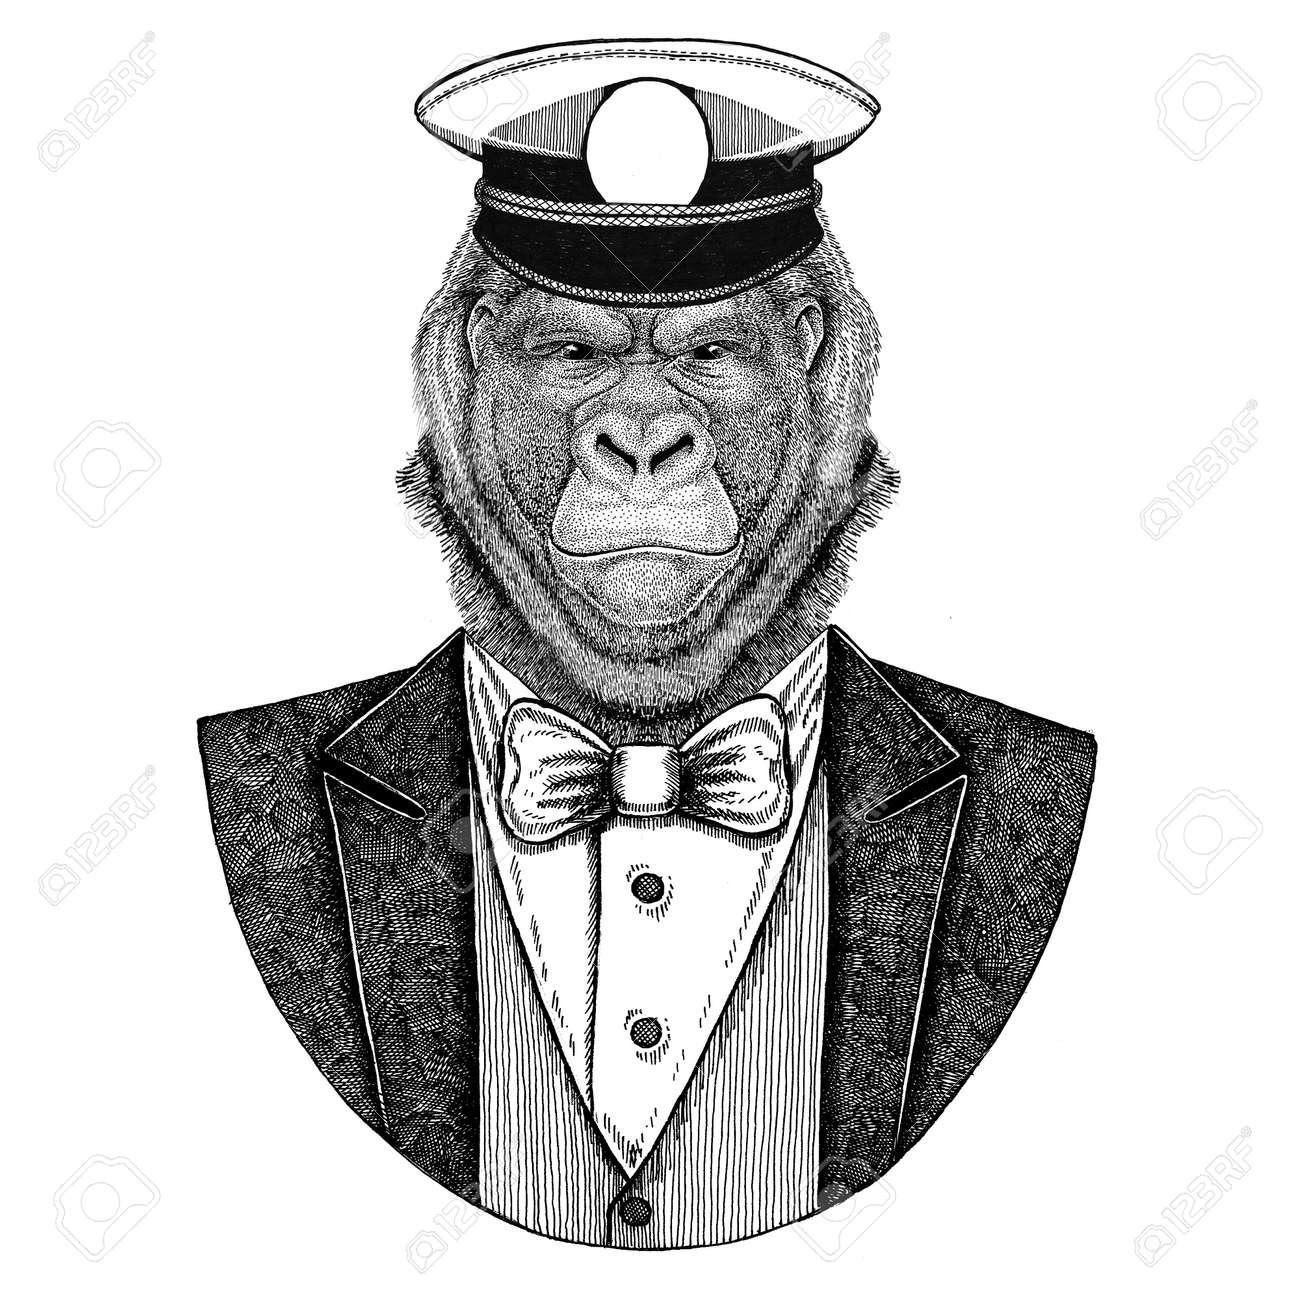 cd57444bf Gorilla, monkey, ape Animal wearing jacket with bow-tie and capitans peaked  cap